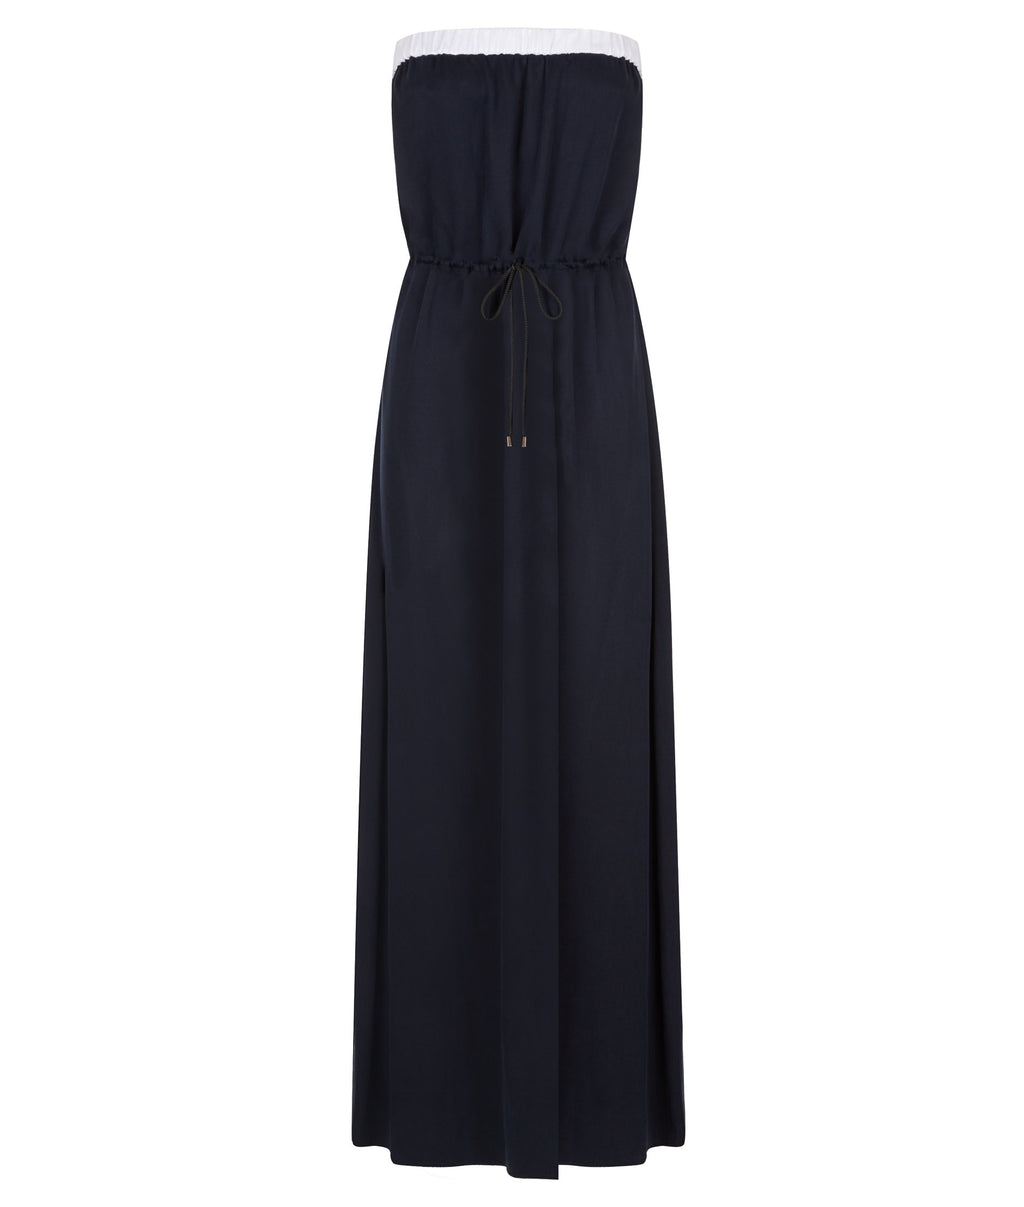 Midnight Blue Strapless Long Summer Dress